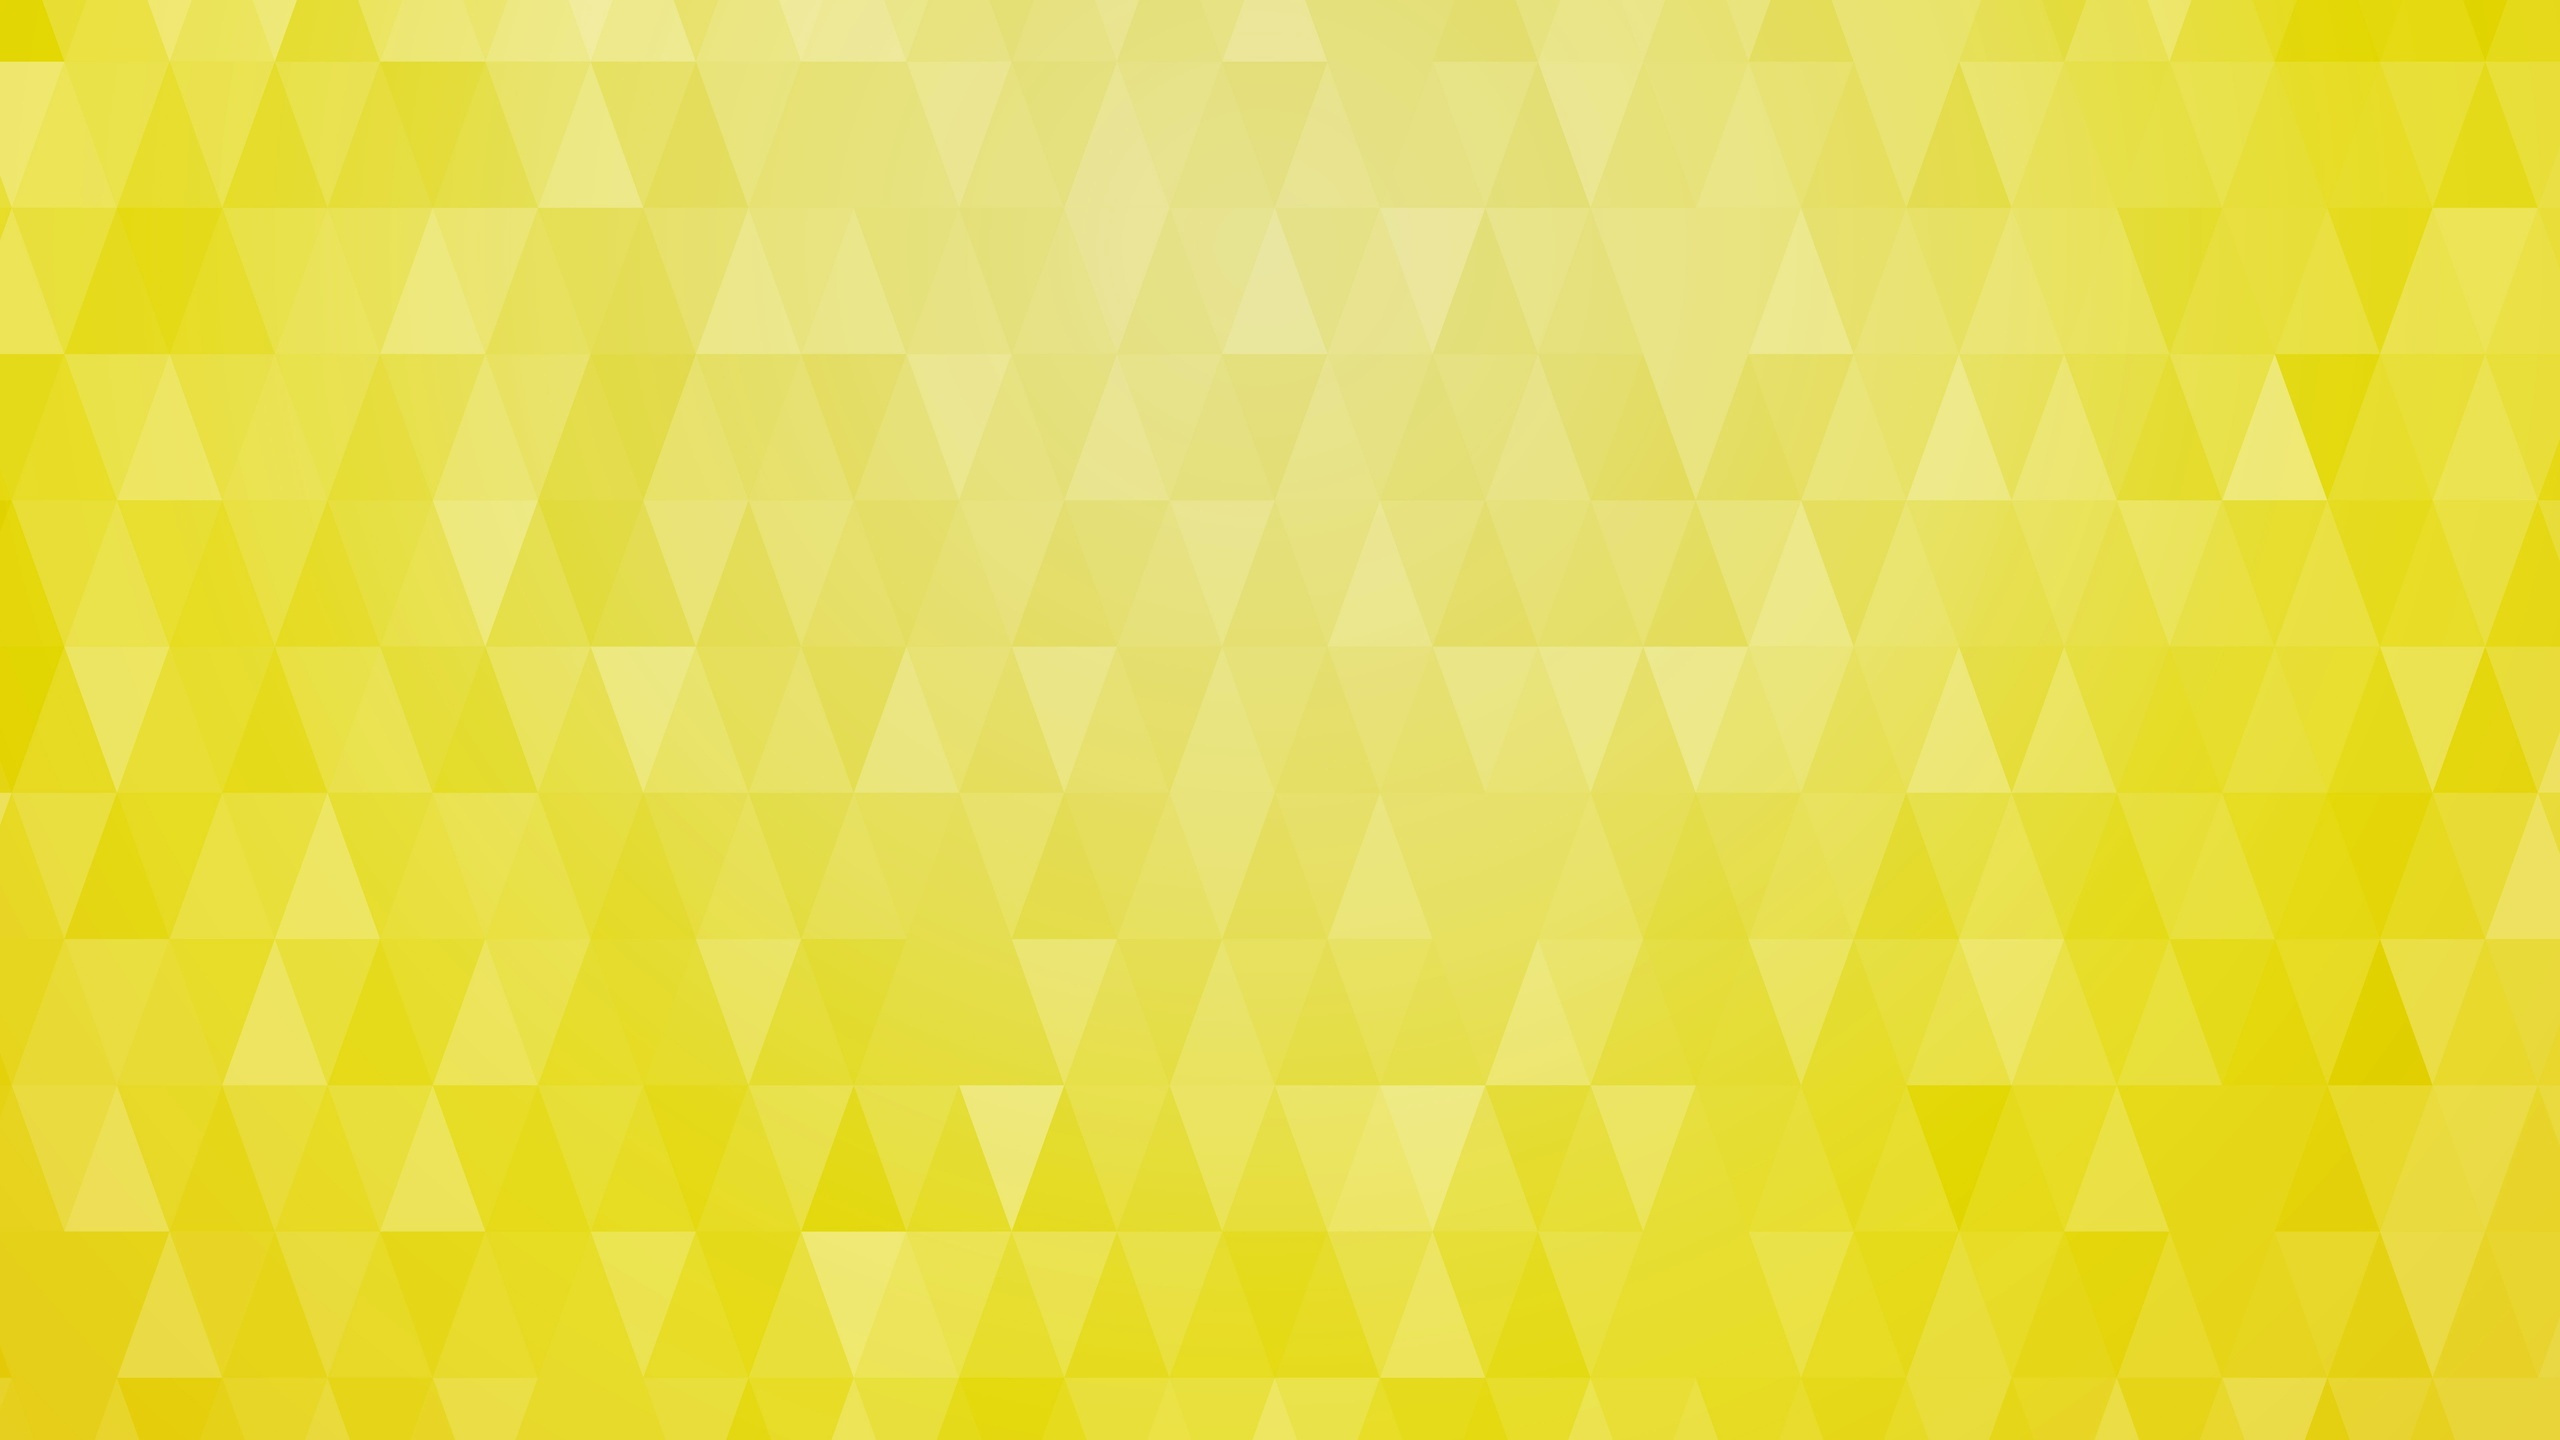 artistic-pattern-triangle-yellow-8k-0d.jpg